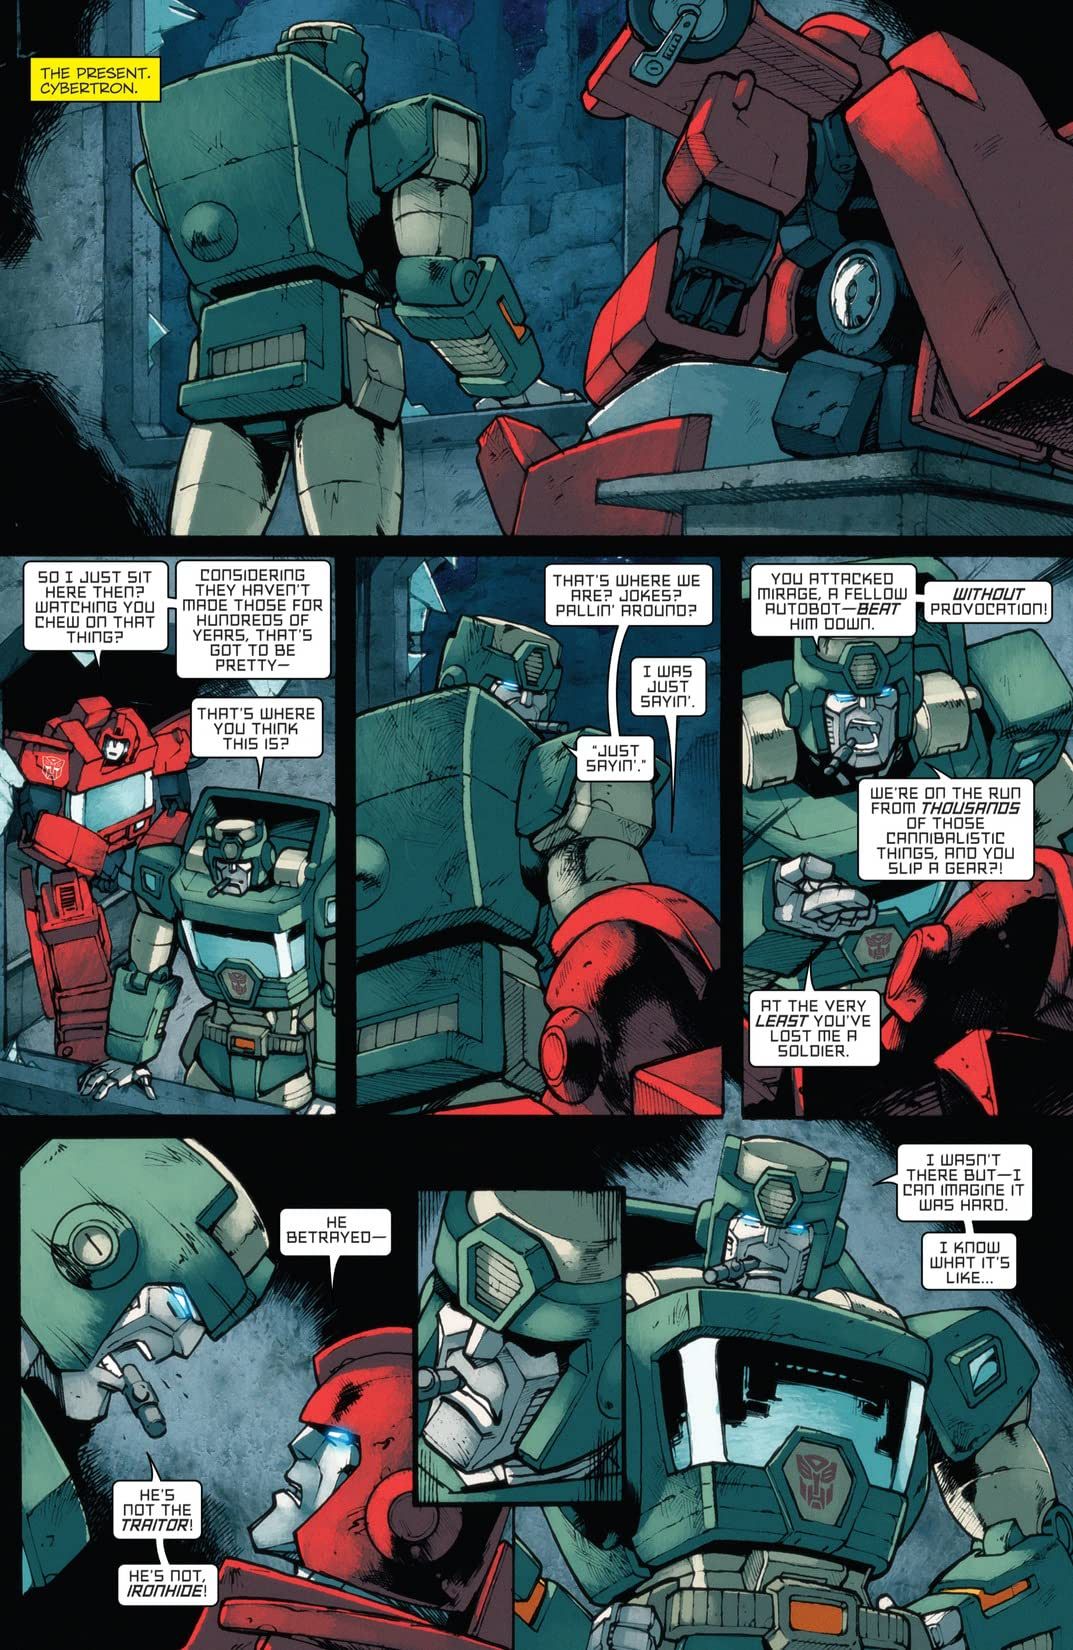 Transformers: All Hail Megatron #8